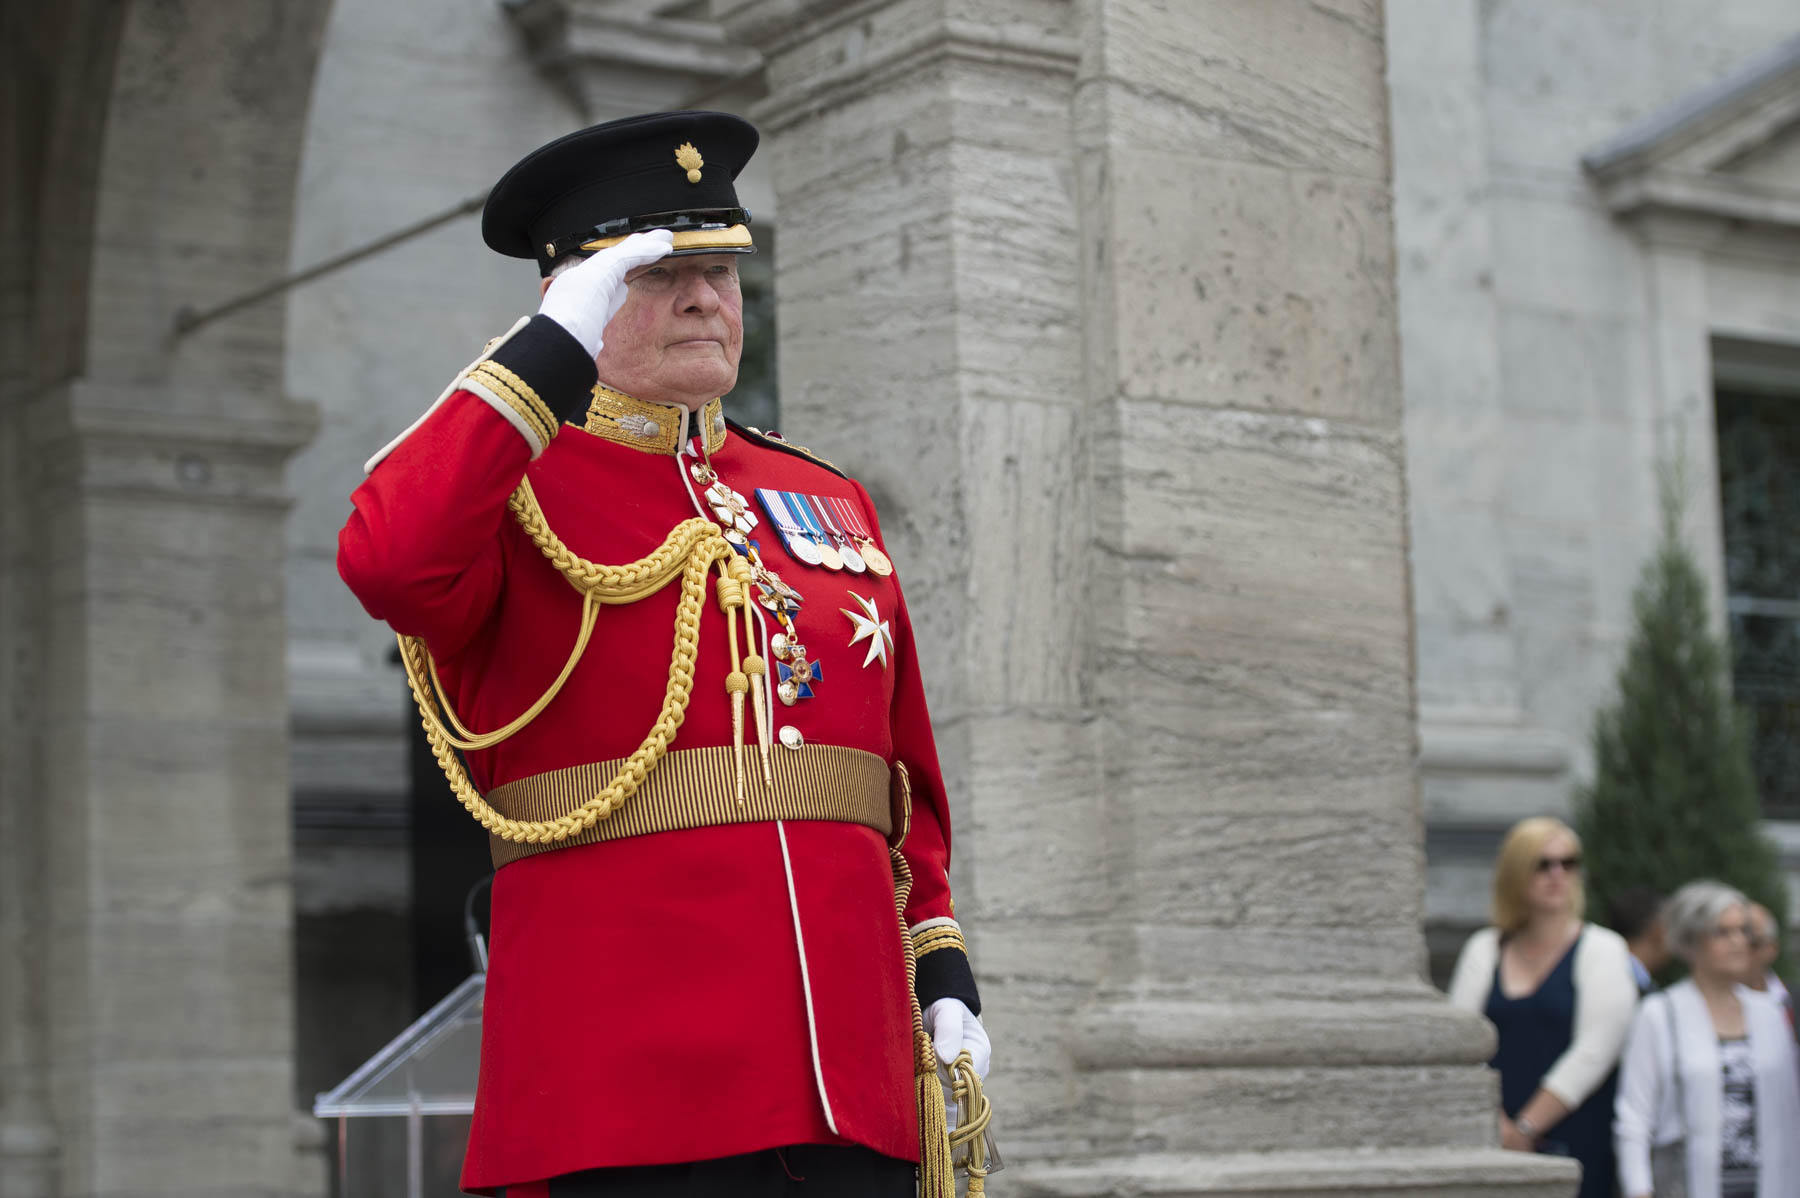 As commander-in-chief of Canada, the governor general plays a major role in recognizing the importance of Canada's military at home and abroad.